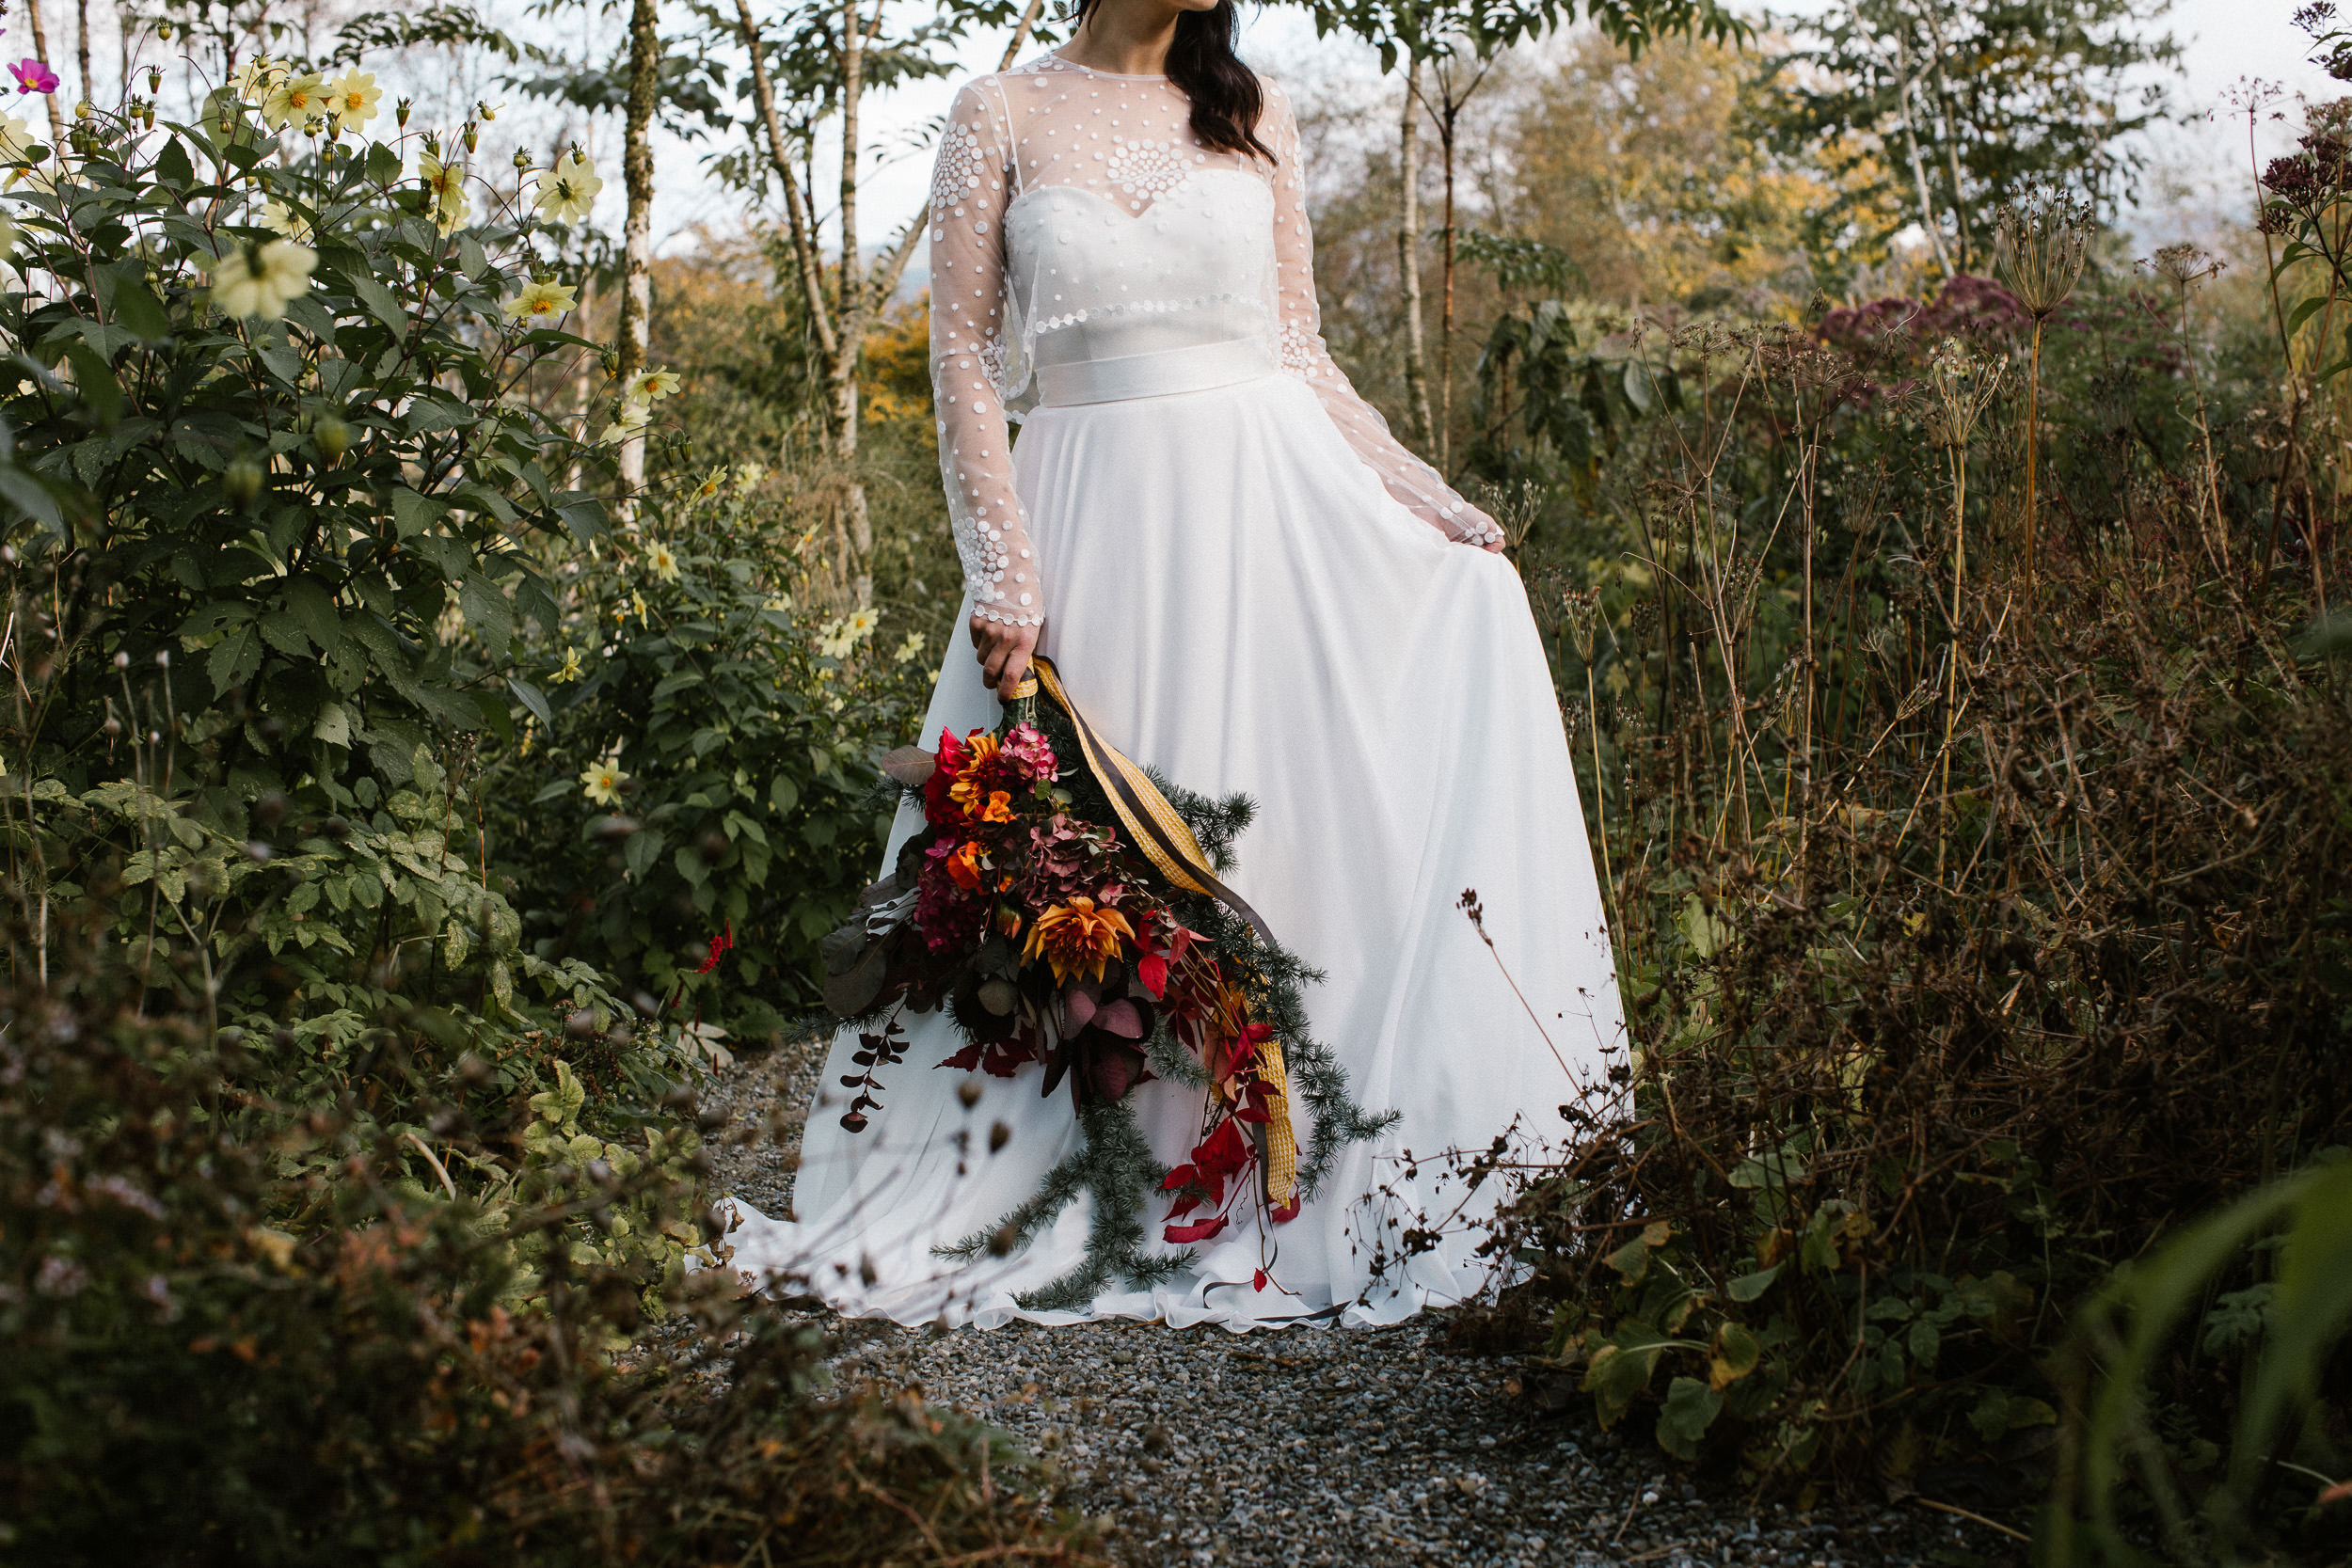 clairebyrnephotography-styled-shoot-huntingbrook-gardens-inspiration-weddings-woods-forest-84.jpg